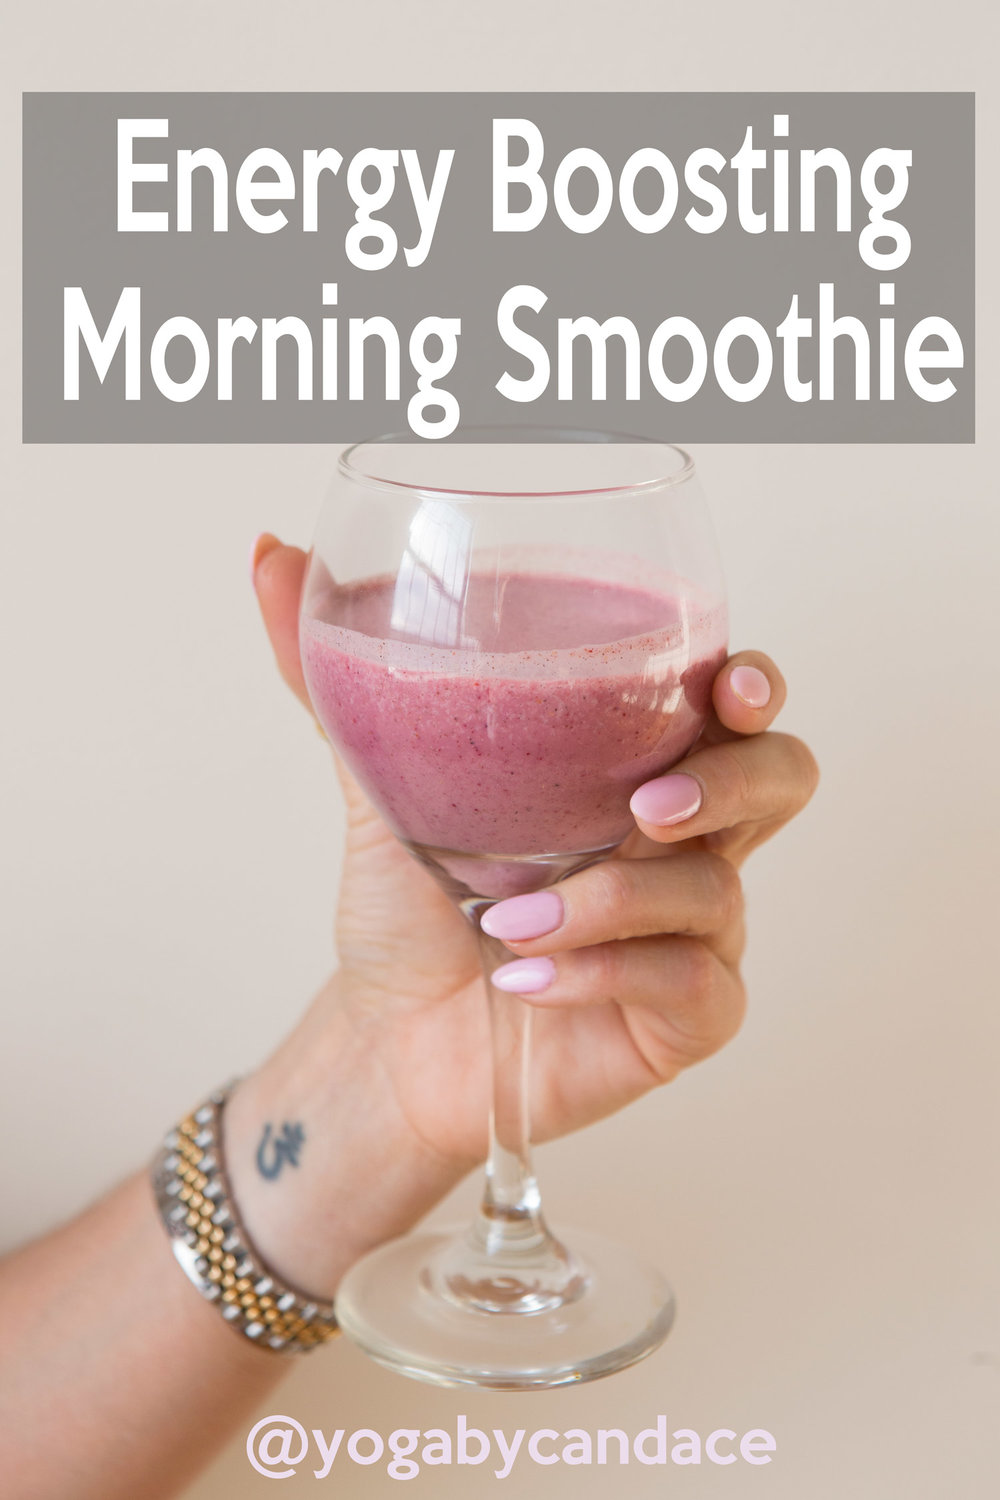 Energy Boosting Morning Smoothie Recipe